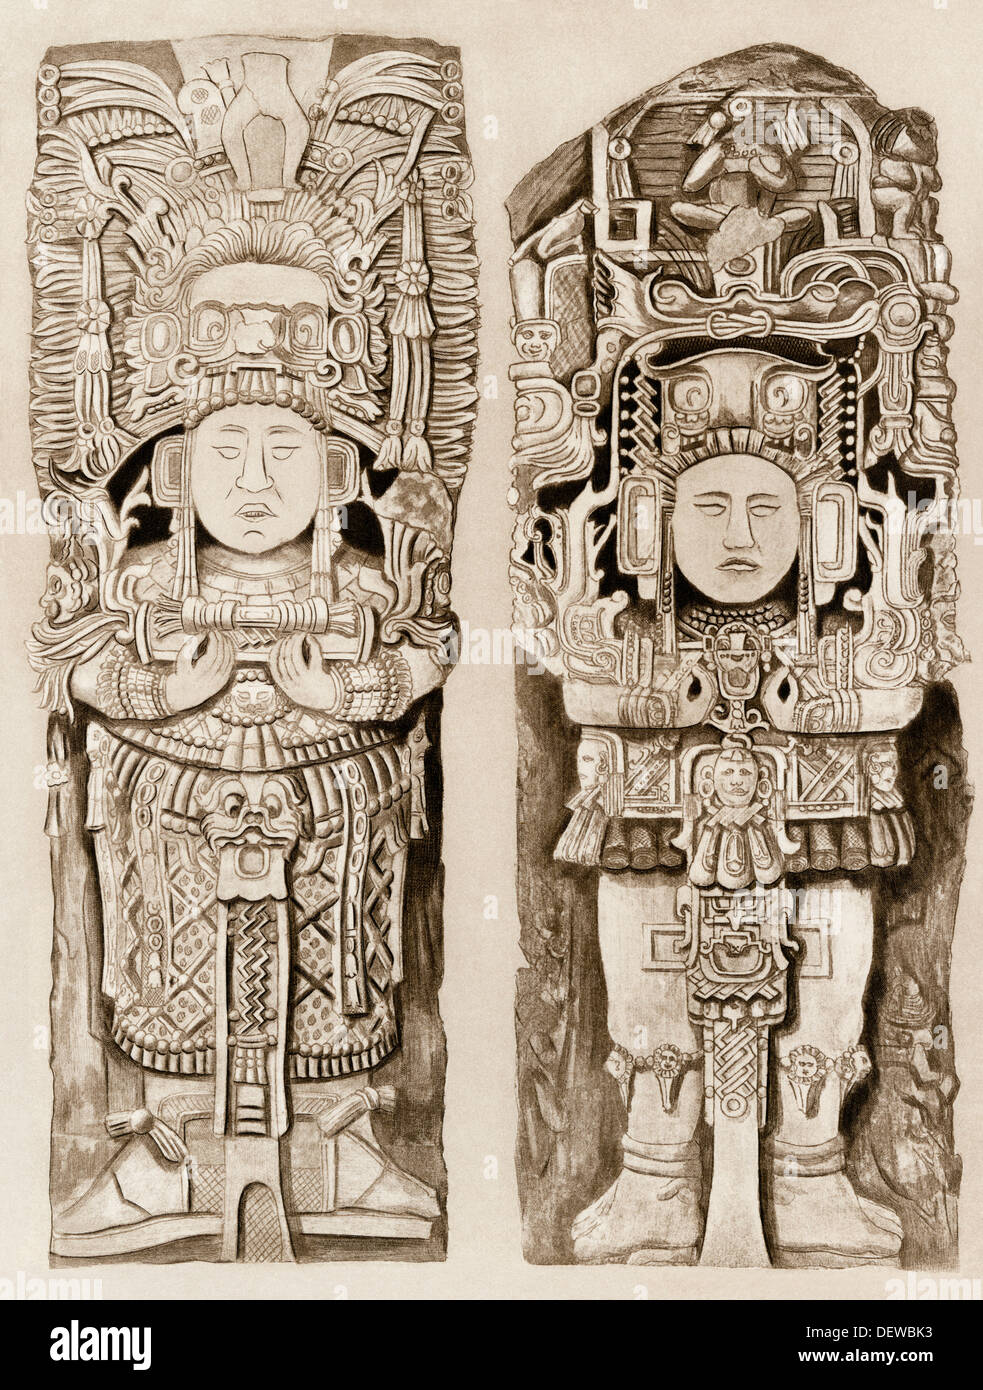 Obelisk statues from the Mayan ruins of Copan, Honduras. Photogravure - Stock Image